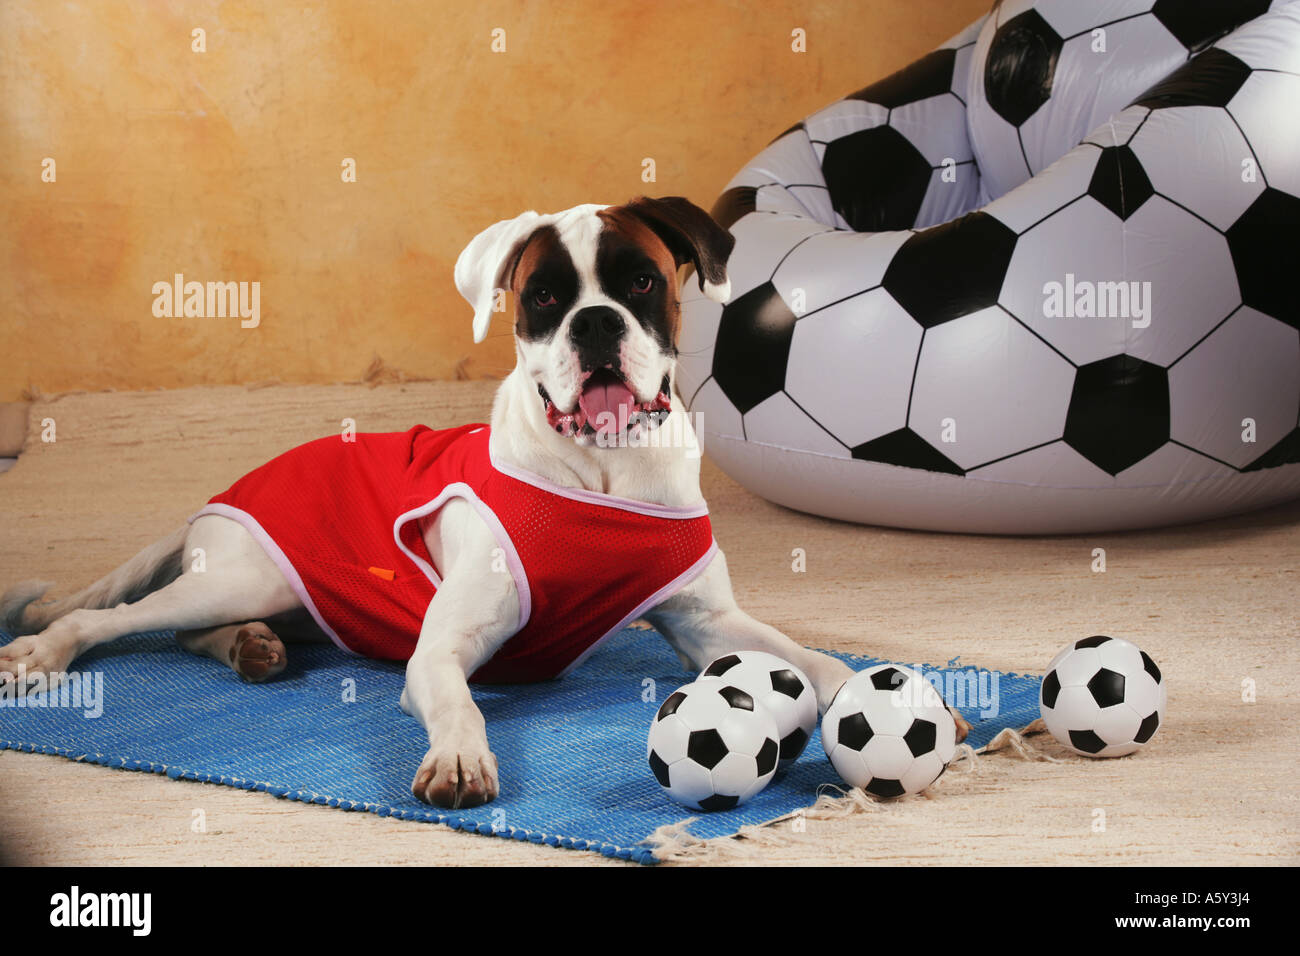 world championship of soccer Boxer with tricot lying next to balls - Stock Image